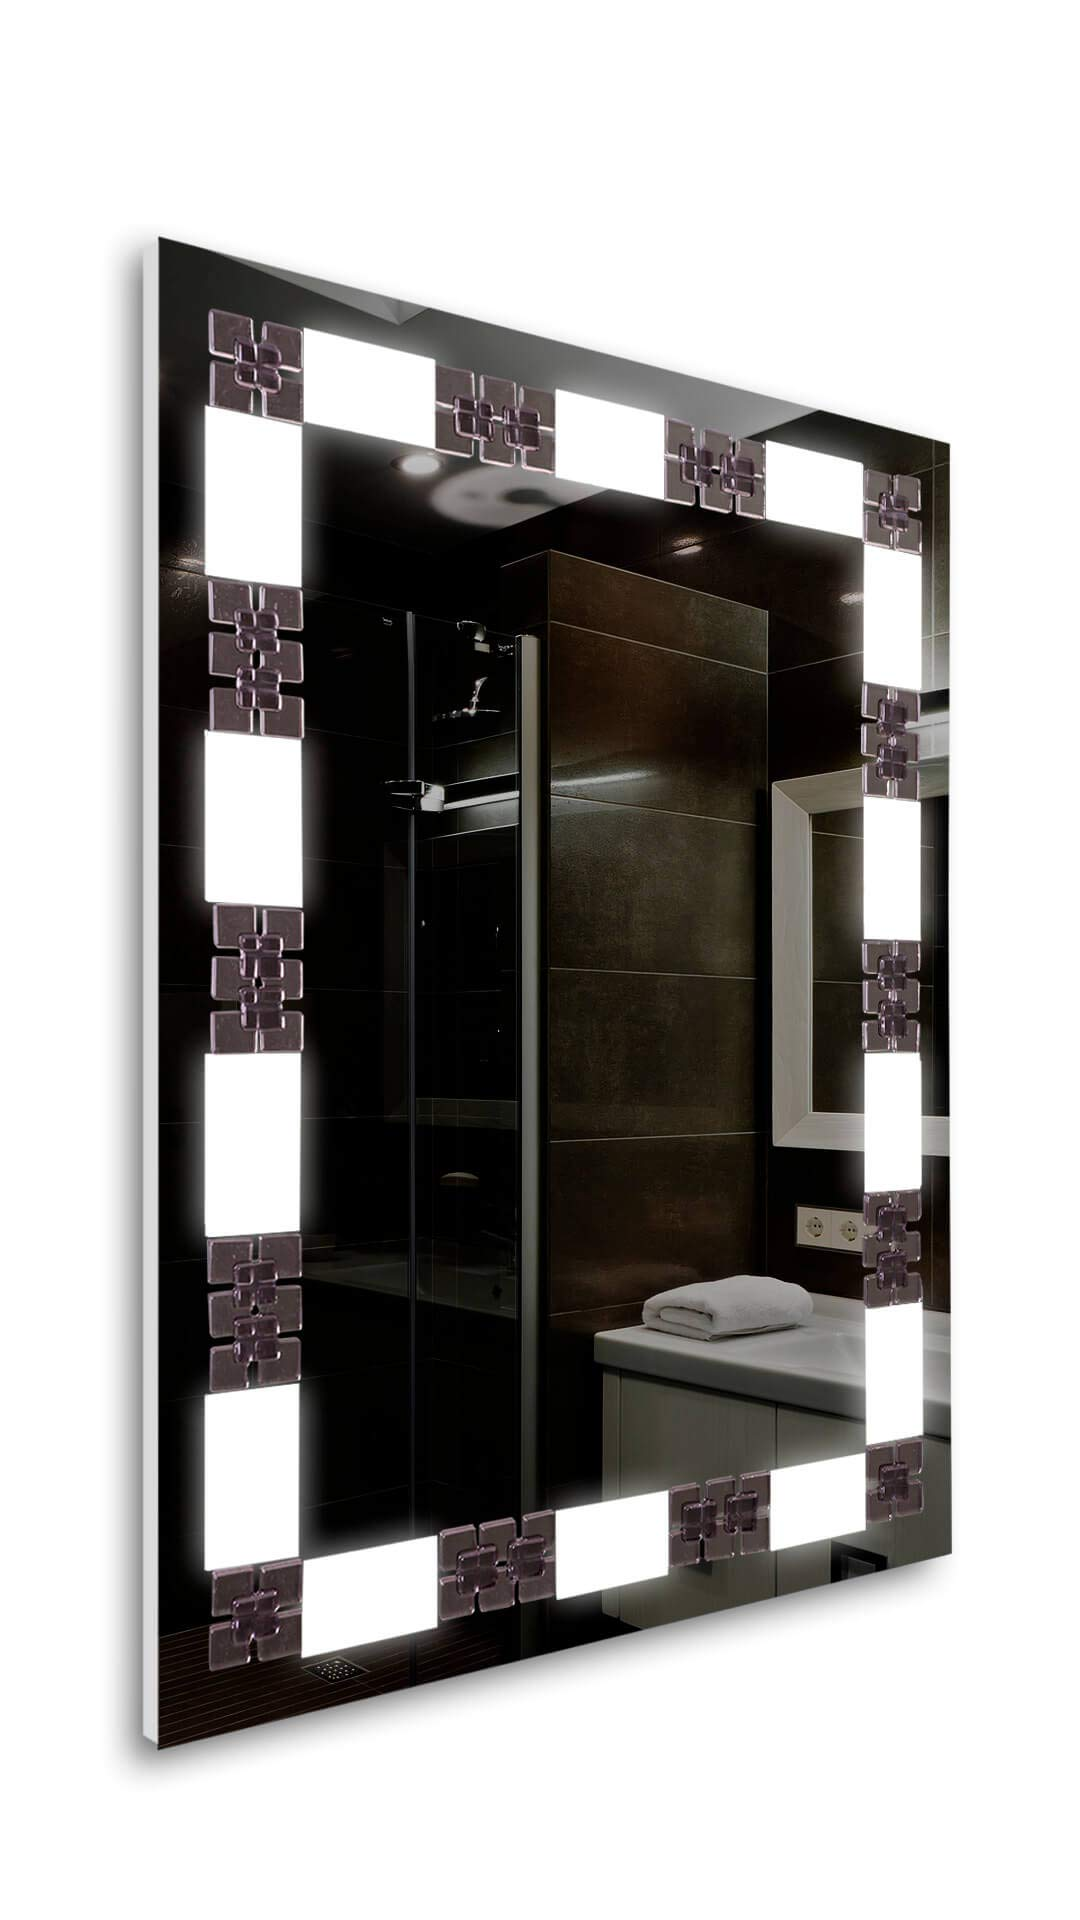 Tilebay LLC Villa Led Lighted Mirror | Bathroom Mirror | Led Make-up Mirror | Glass Accents| 3 Switch Types Available (31x23, Remote Control)